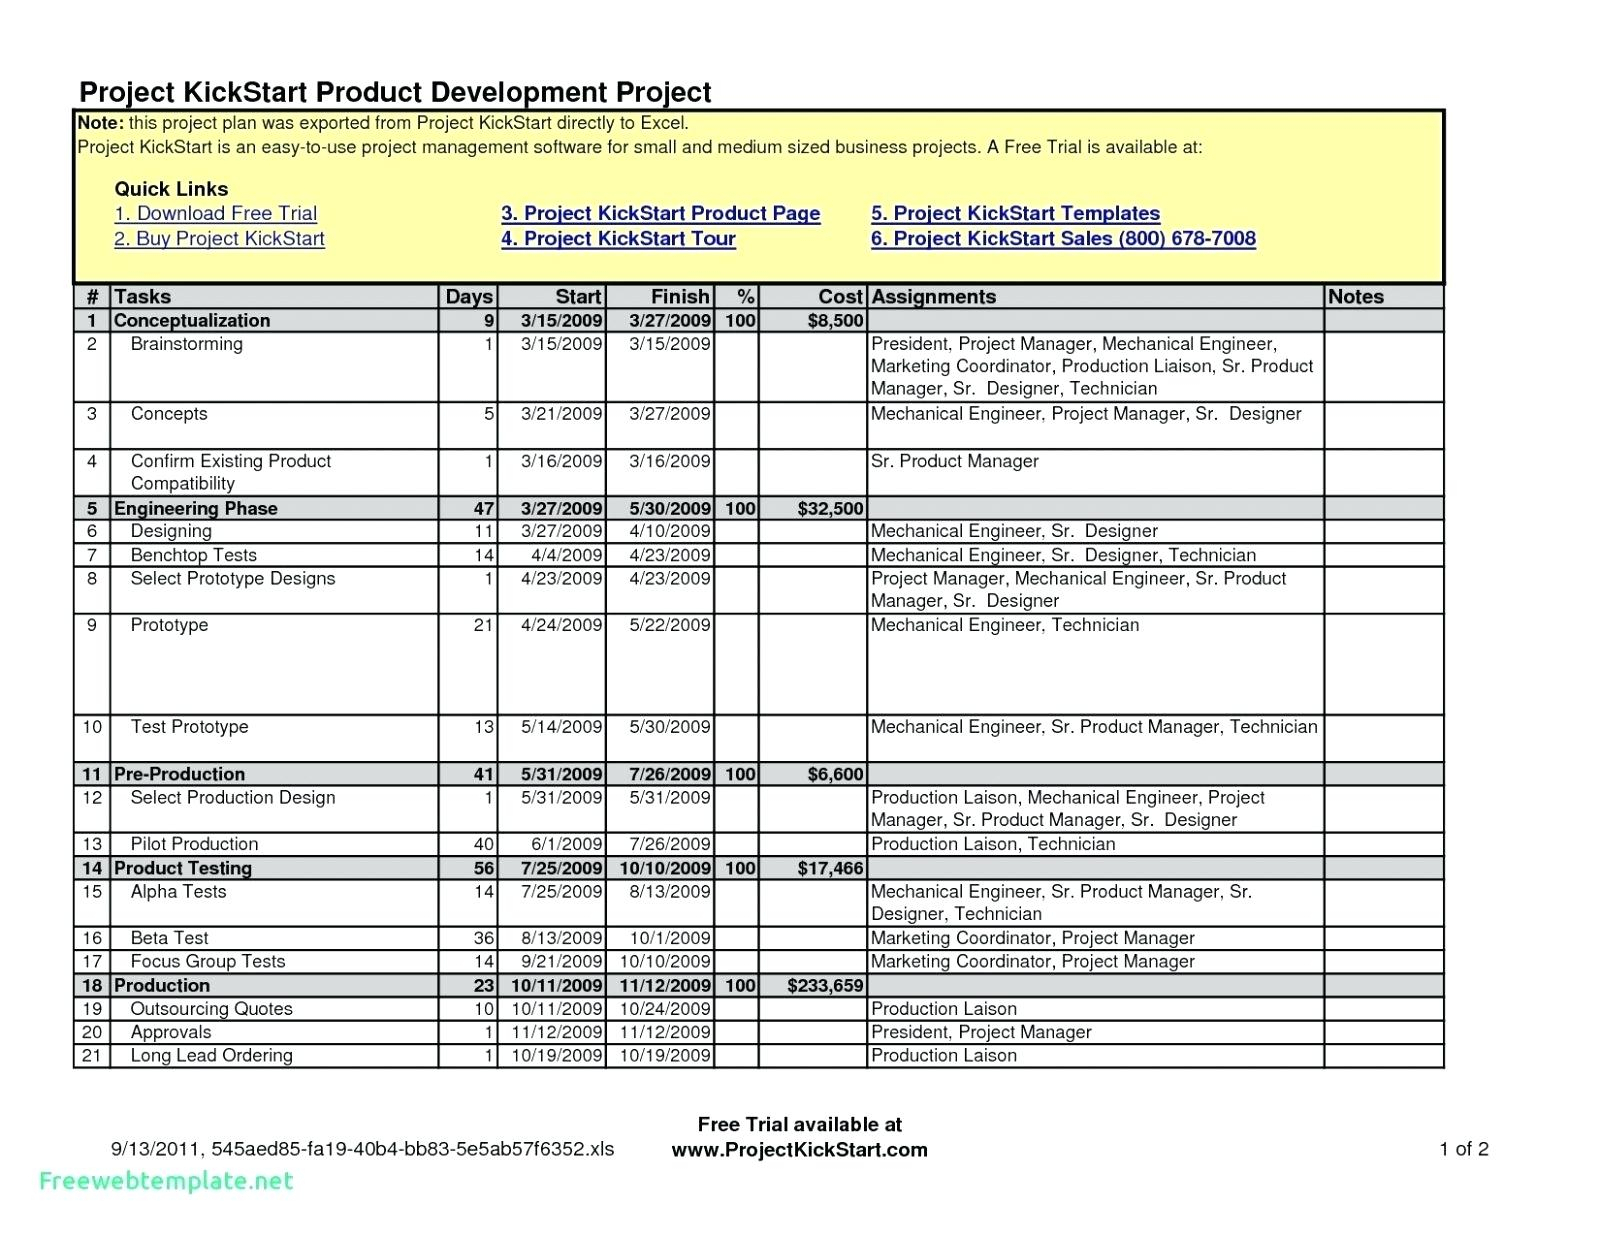 Project Management Tracking Spreadsheet Pertaining To Project Management Budget Tracking Template Software Template